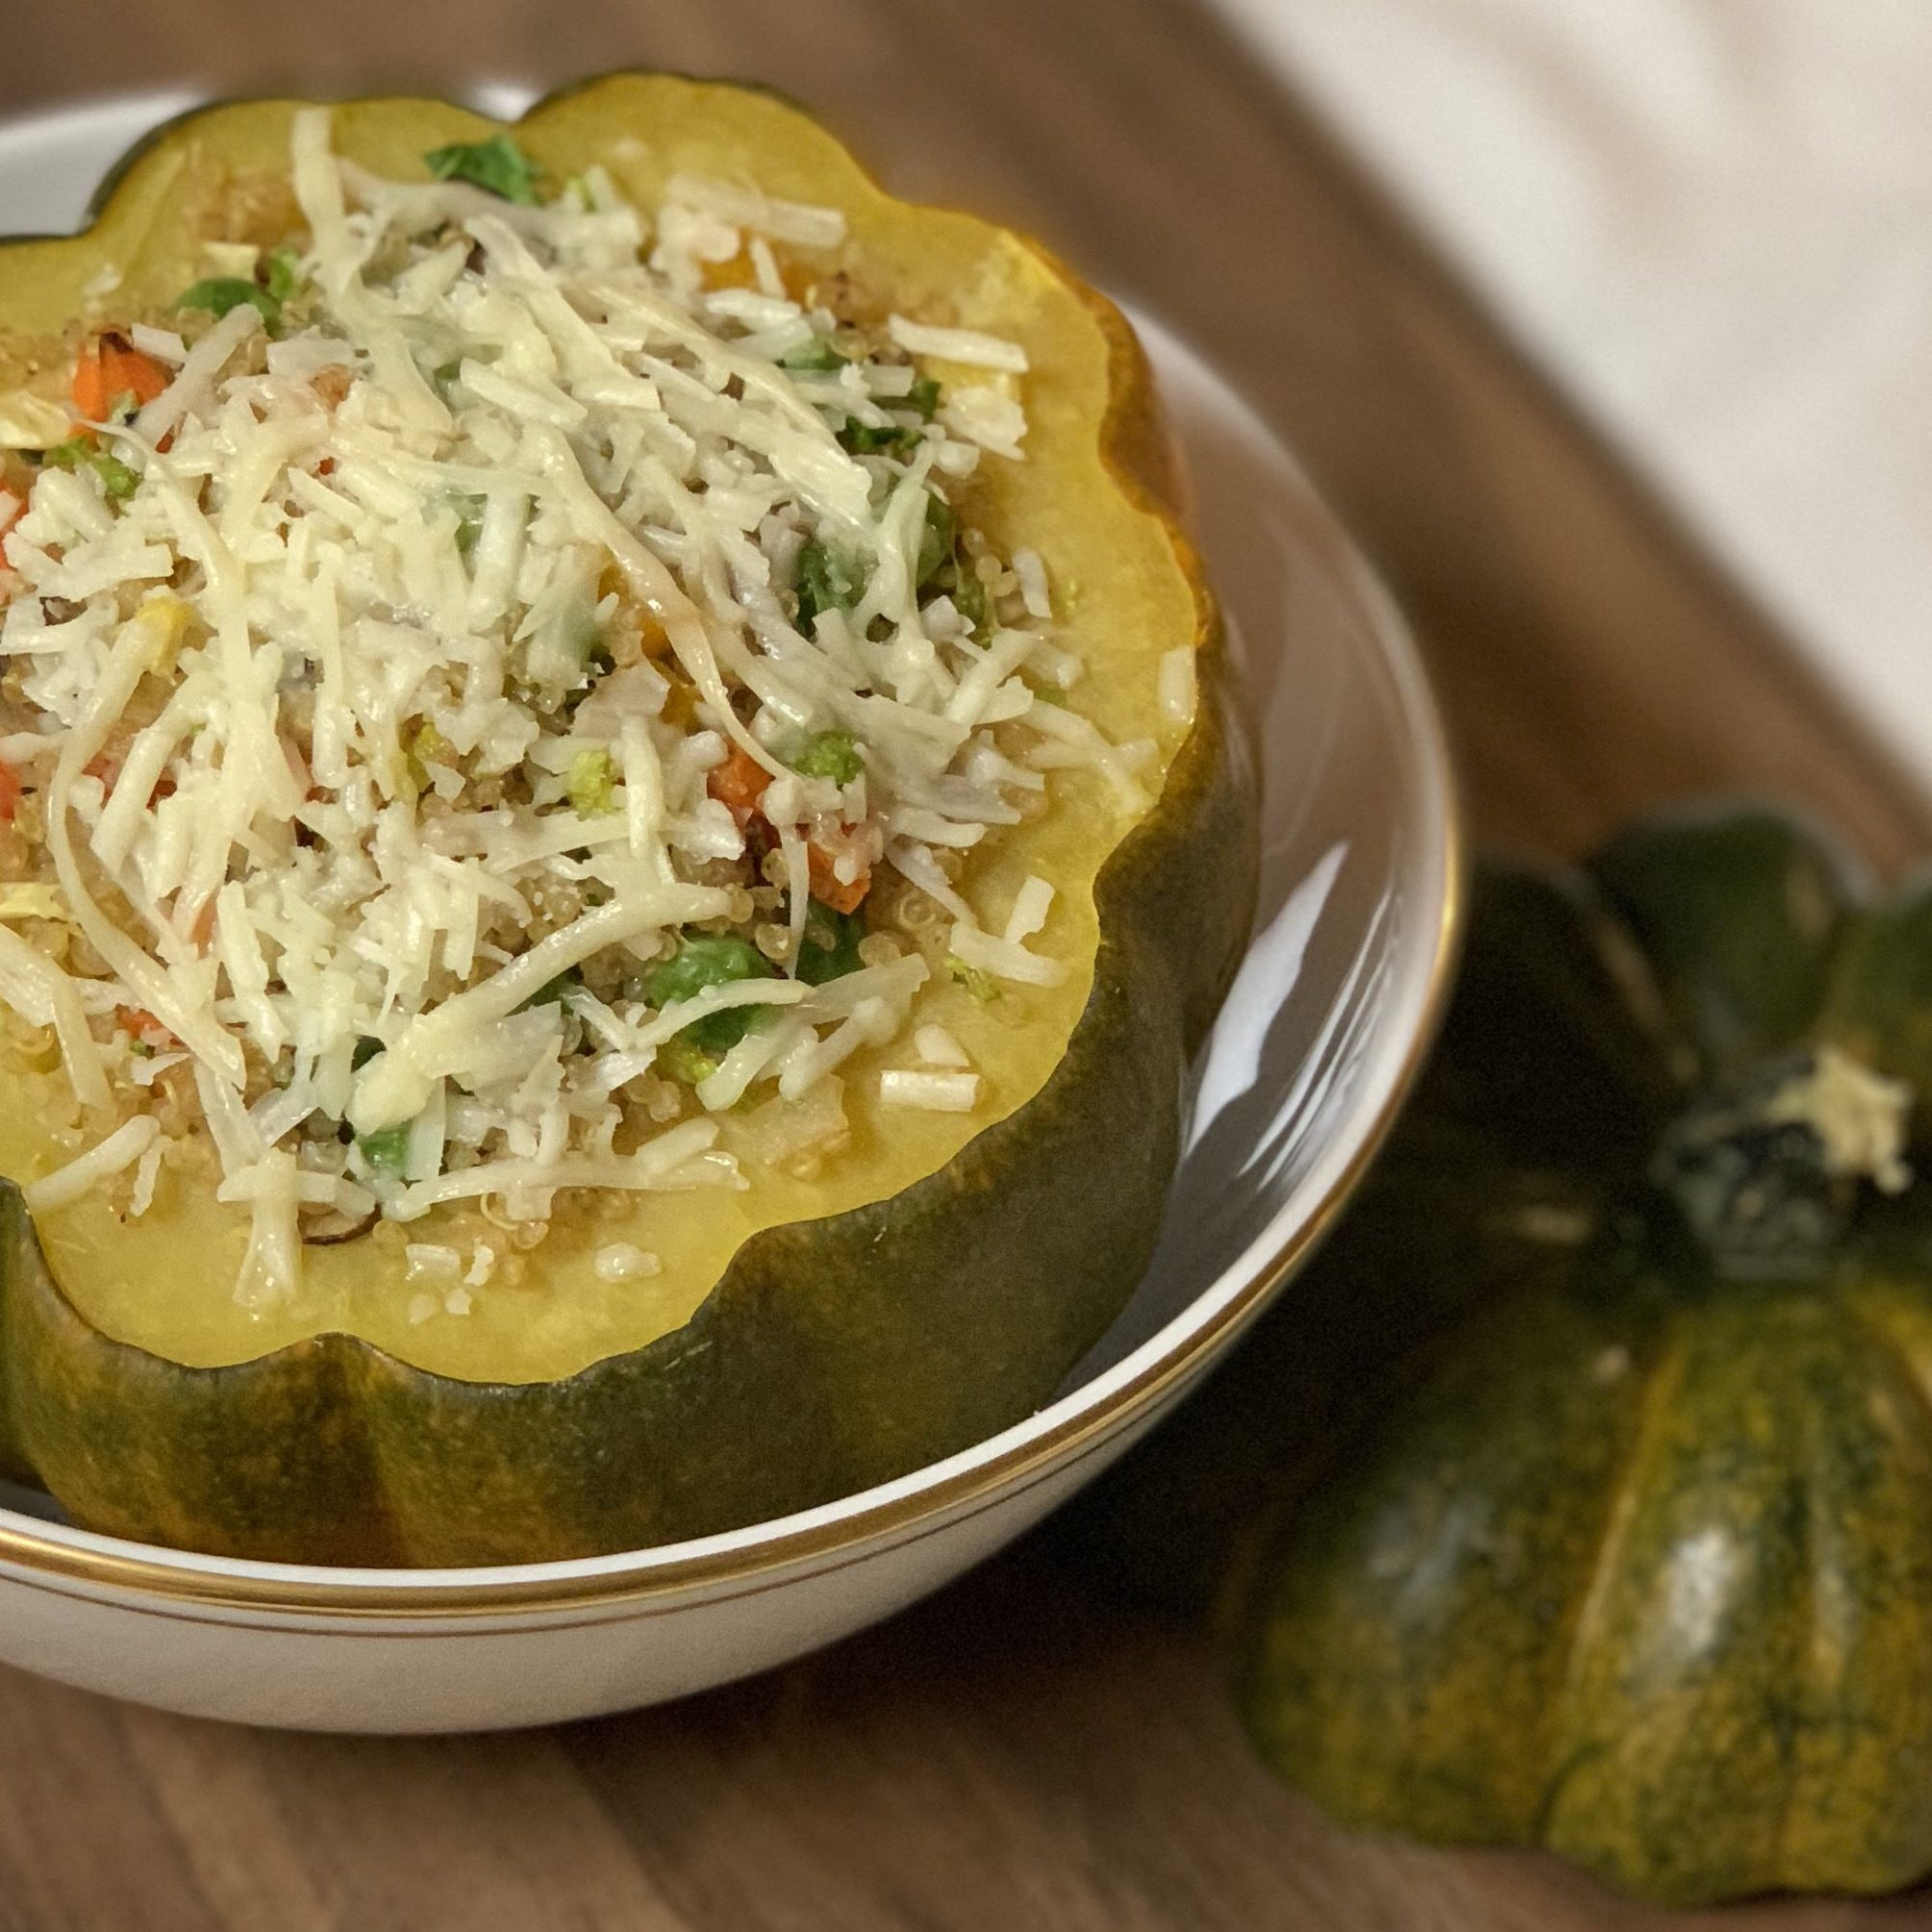 Quinoa & Vegetable Stuffed Acorn Squash with Asiago Cheese & Balsamic Vinegar